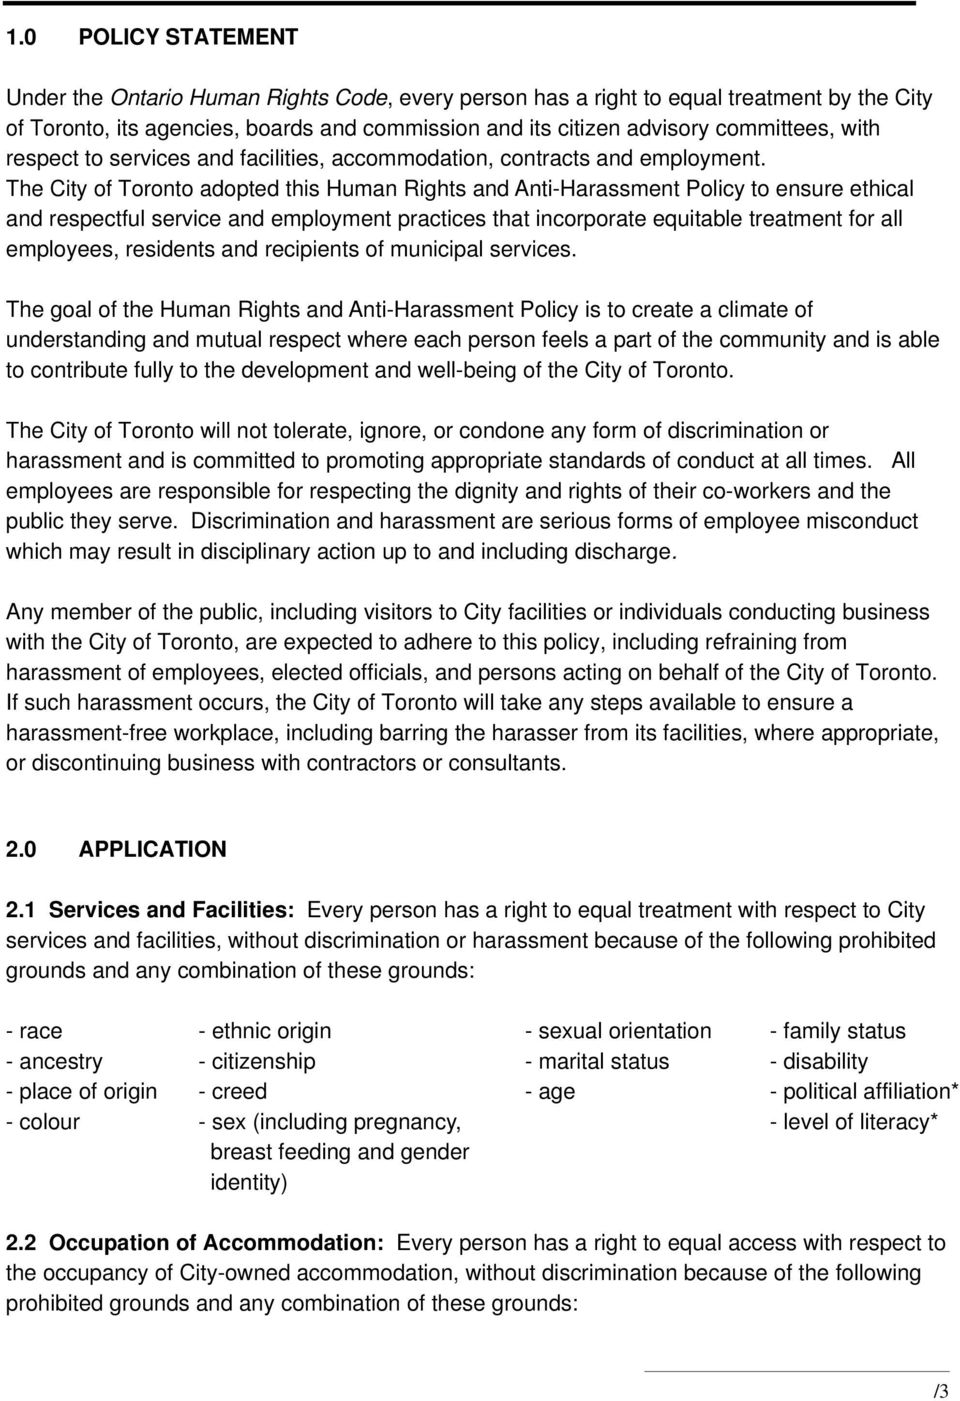 The City of Toronto adopted this Human Rights and Anti-Harassment Policy to ensure ethical and respectful service and employment practices that incorporate equitable treatment for all employees,